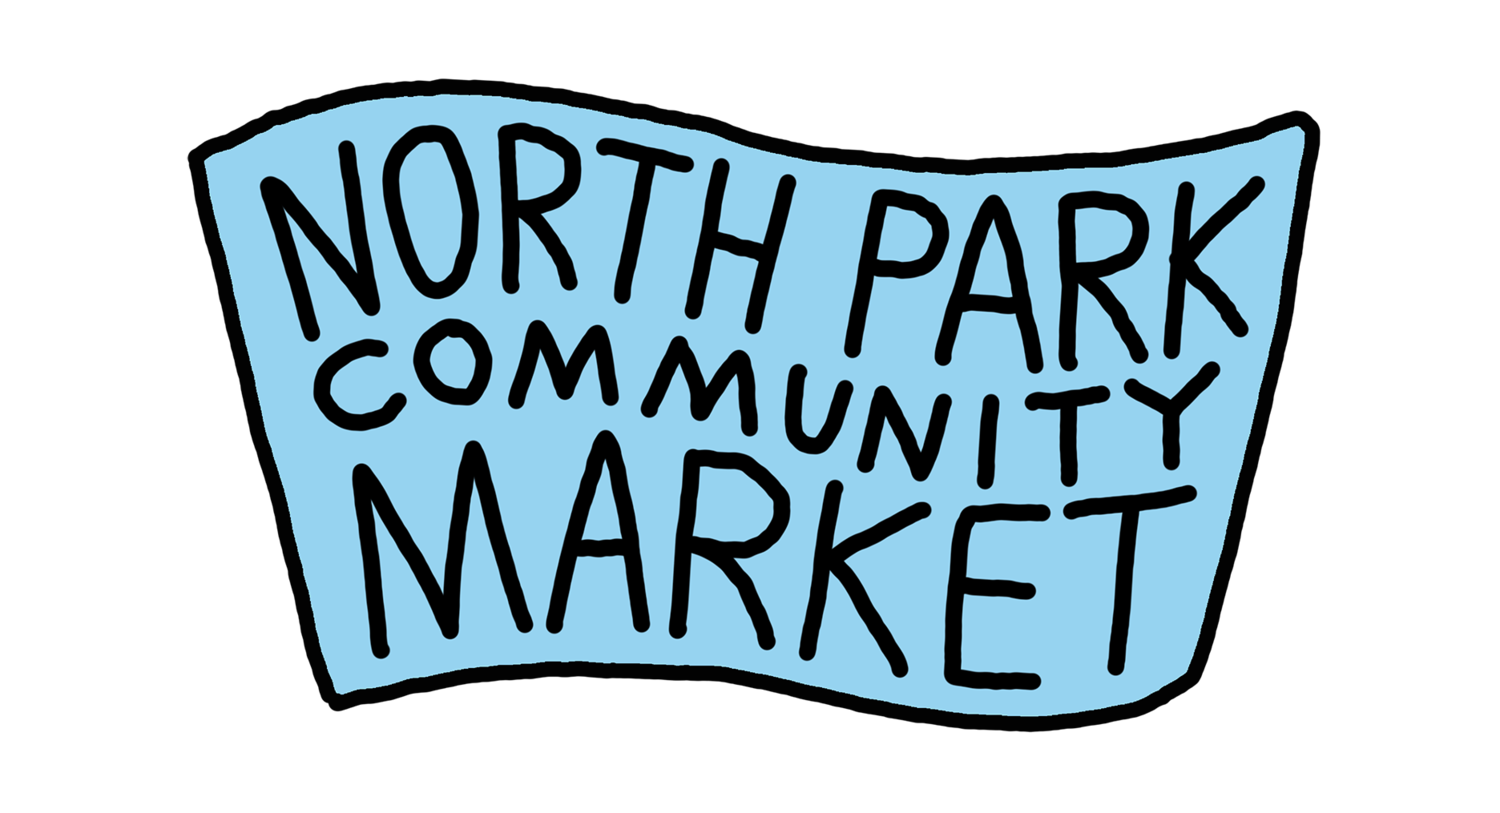 North Park Community Market